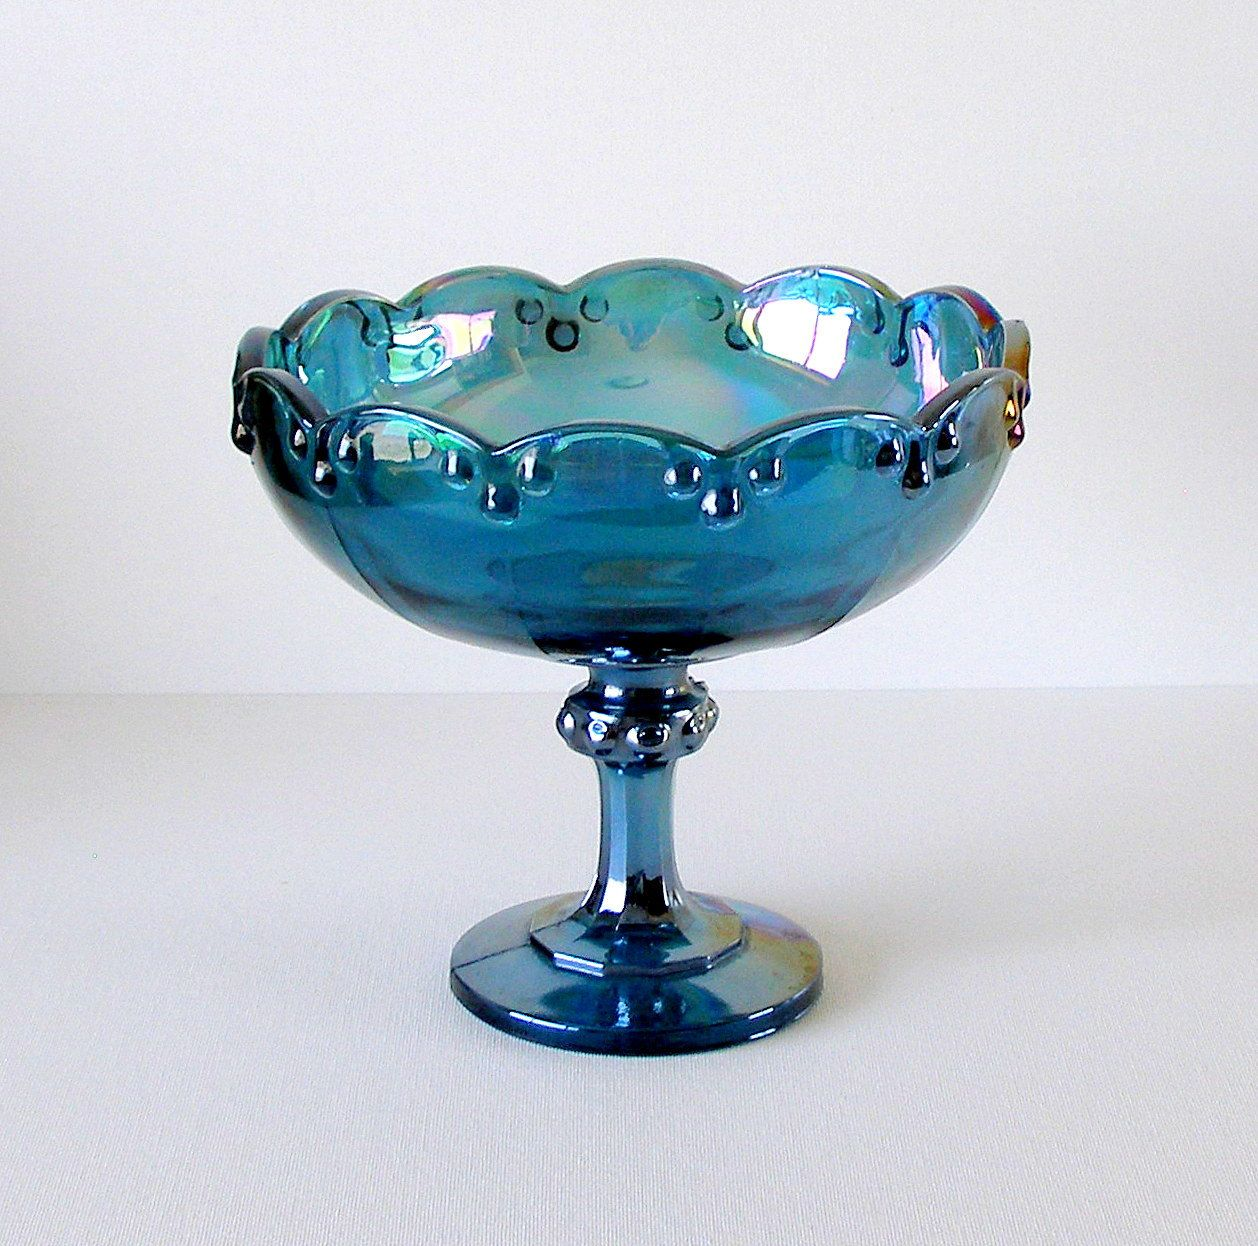 Vintage blue carnival glass pedestal bowlcompote teardrop pattern vintage blue carnival glass pedestal bowlcompote teardrop pattern reviewsmspy